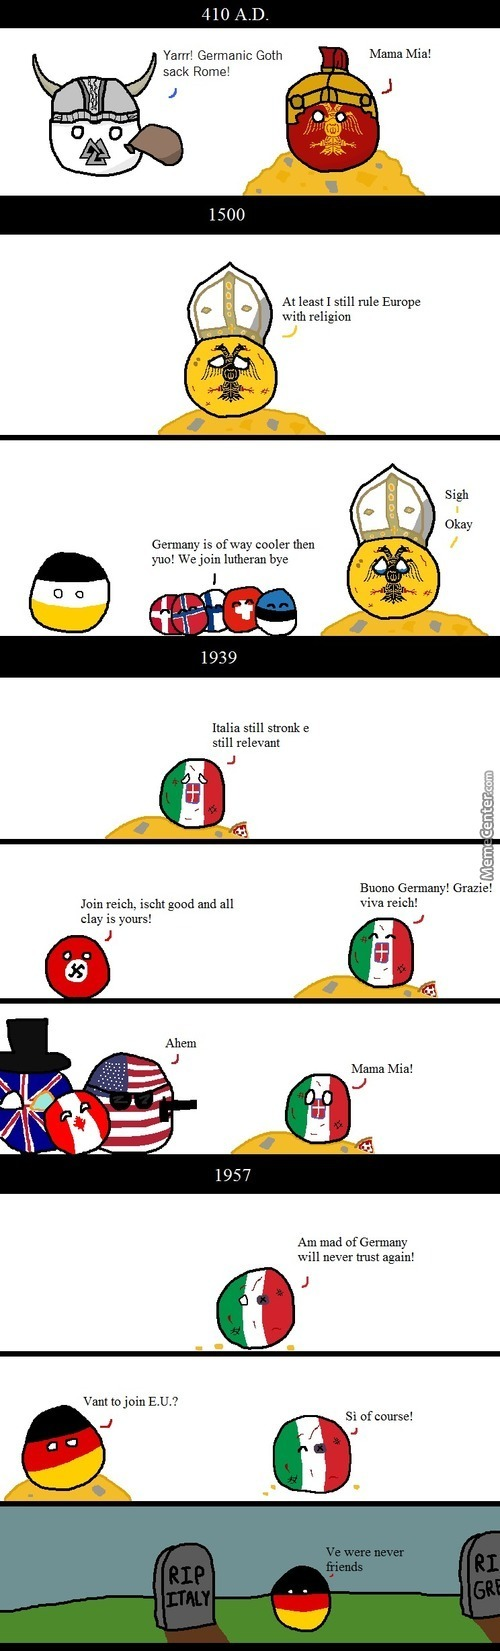 Brief History Of Italy